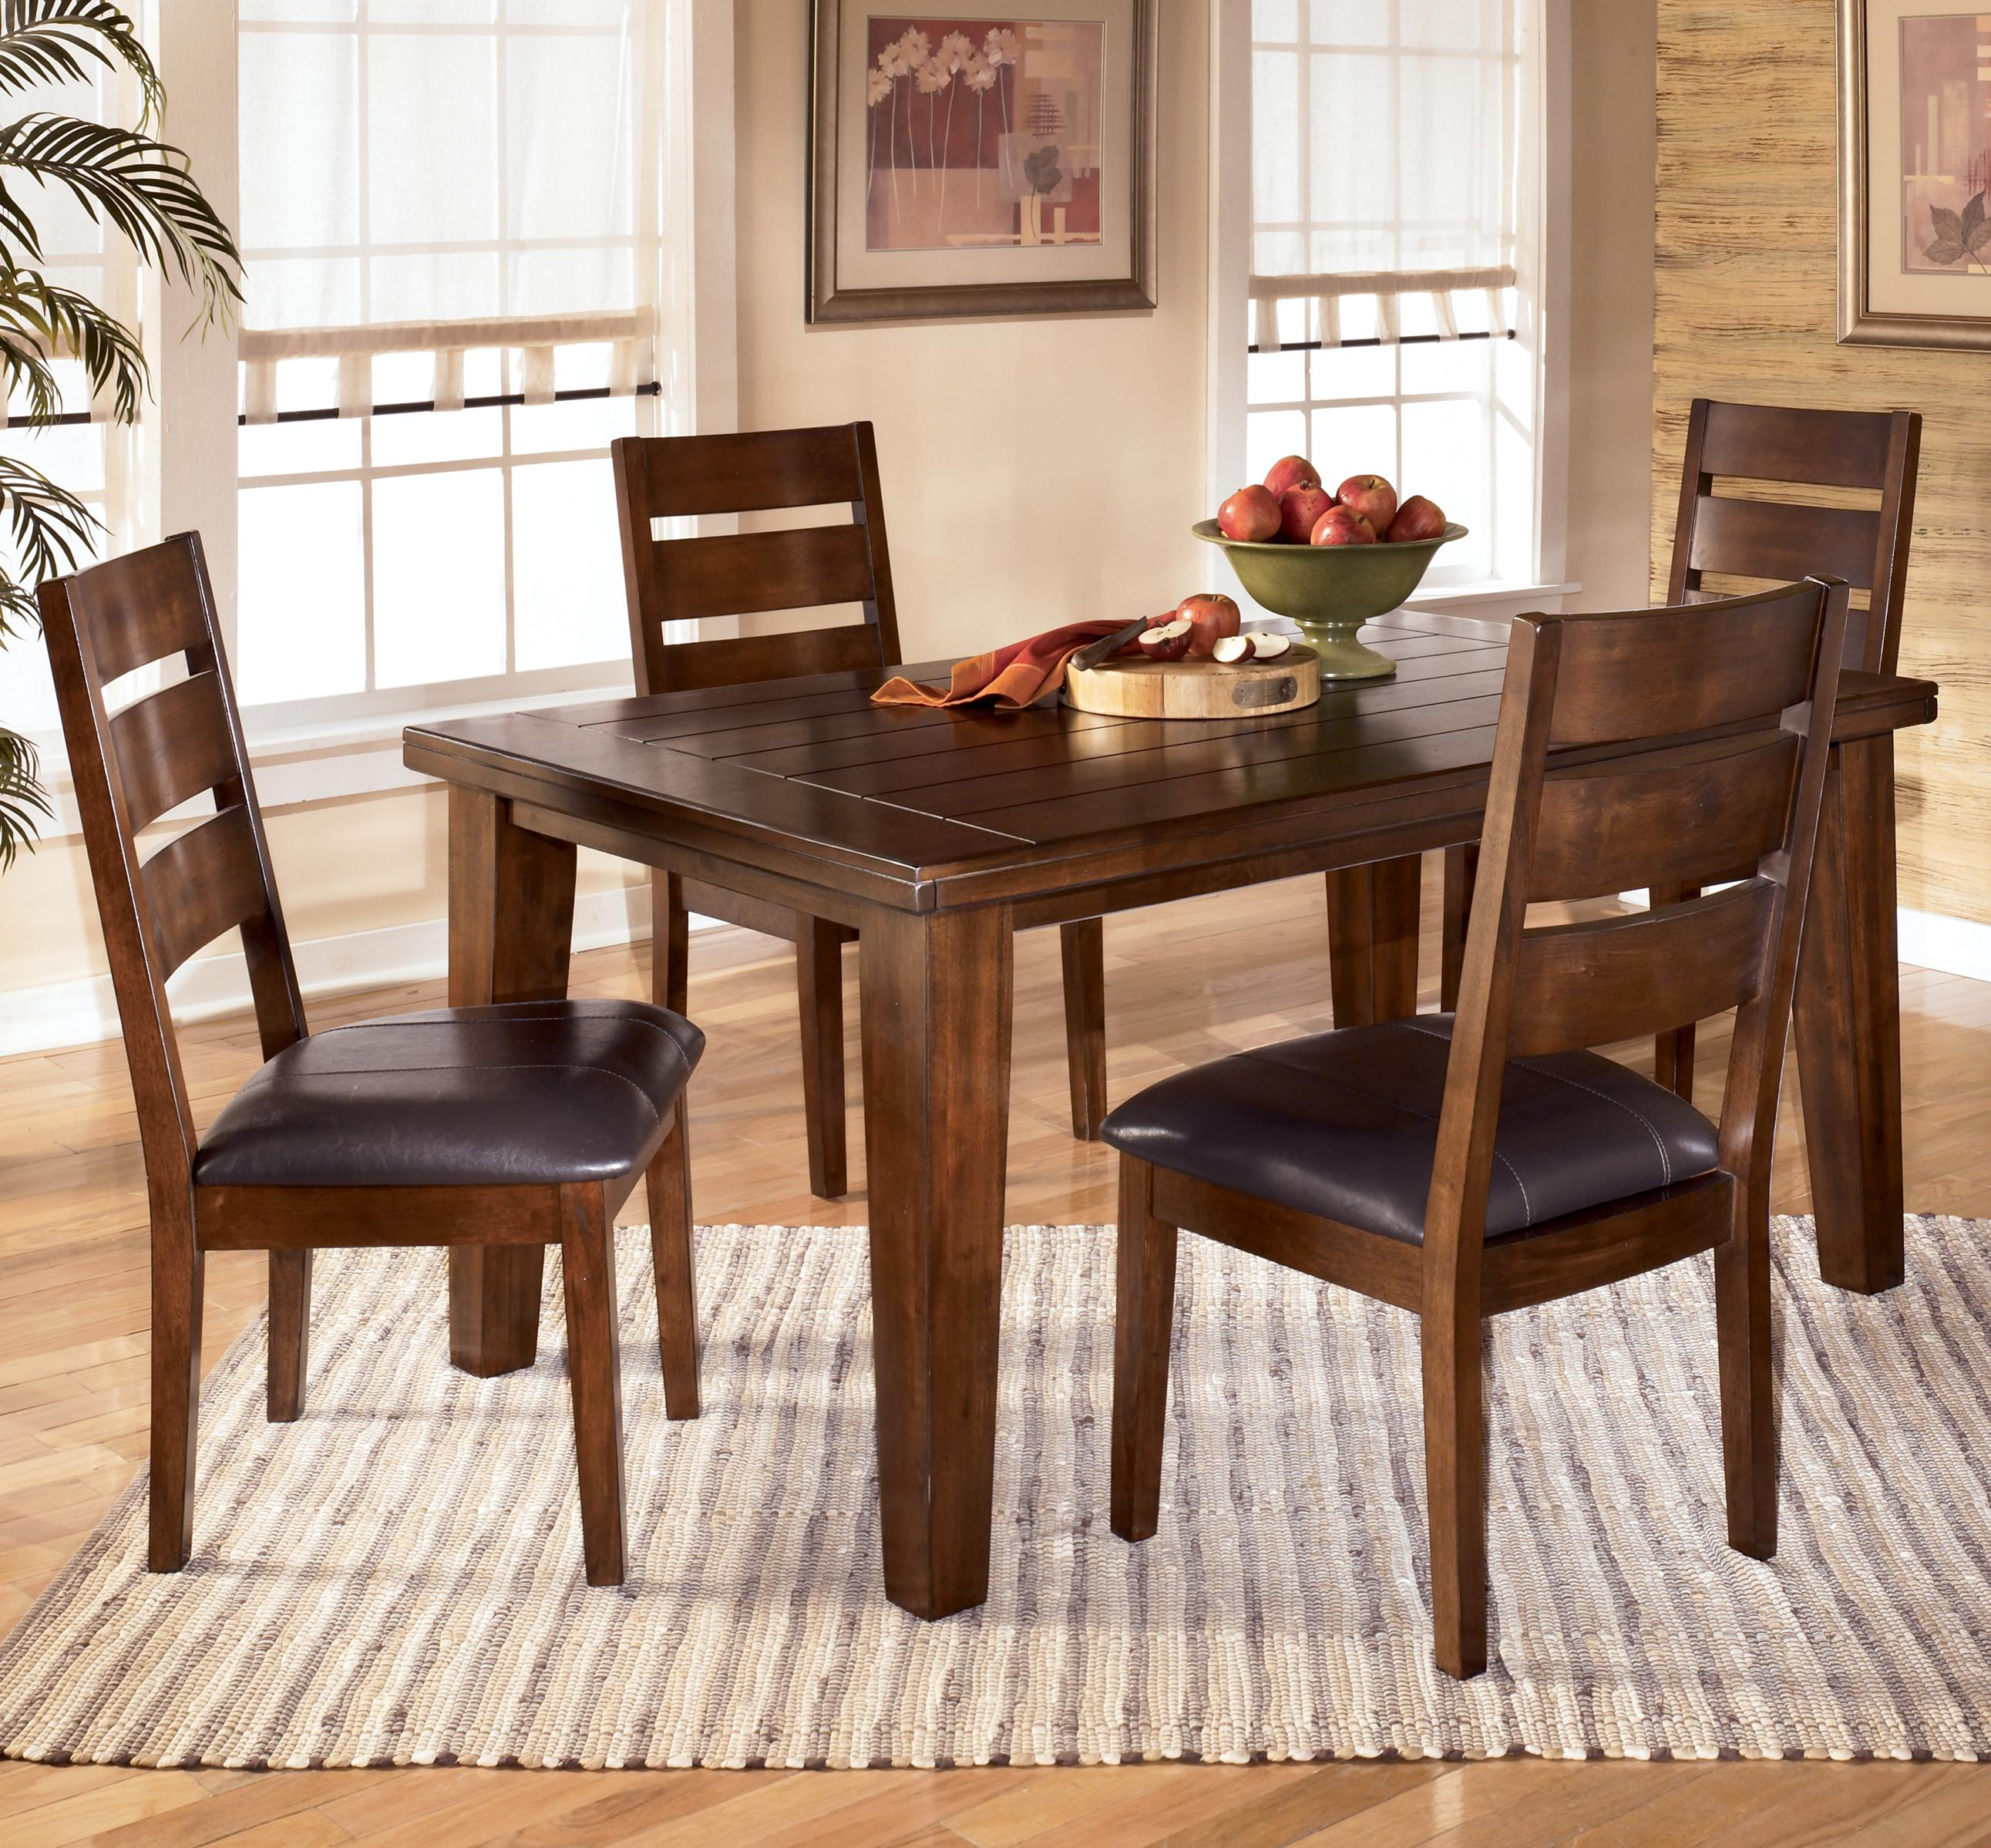 Signature design by ashley larchmont 5 piece rectangular dining table set item number d442